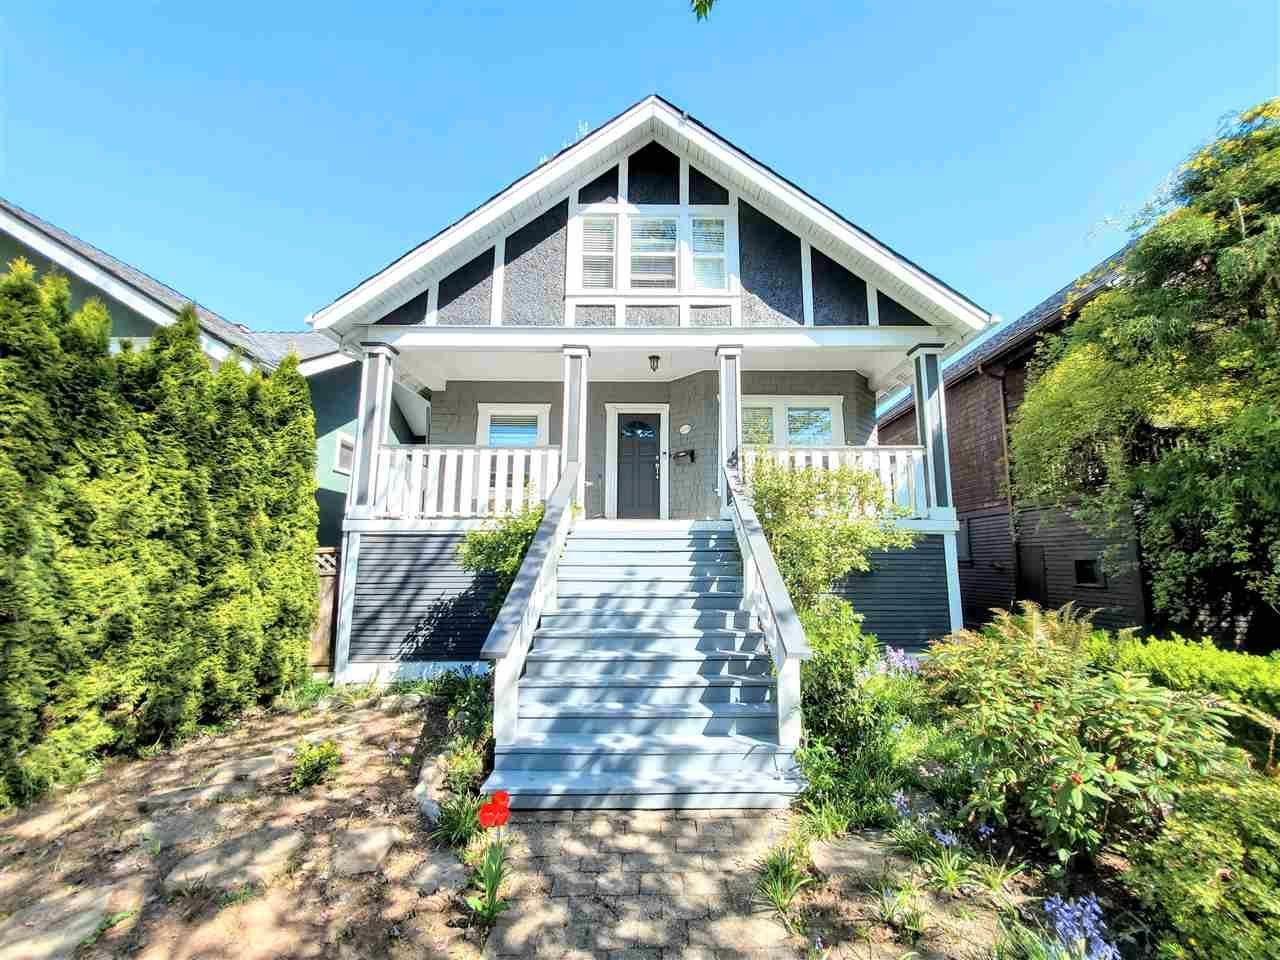 Main Photo: 2159 W 45TH Avenue in Vancouver: Kerrisdale House for sale (Vancouver West)  : MLS®# R2571281